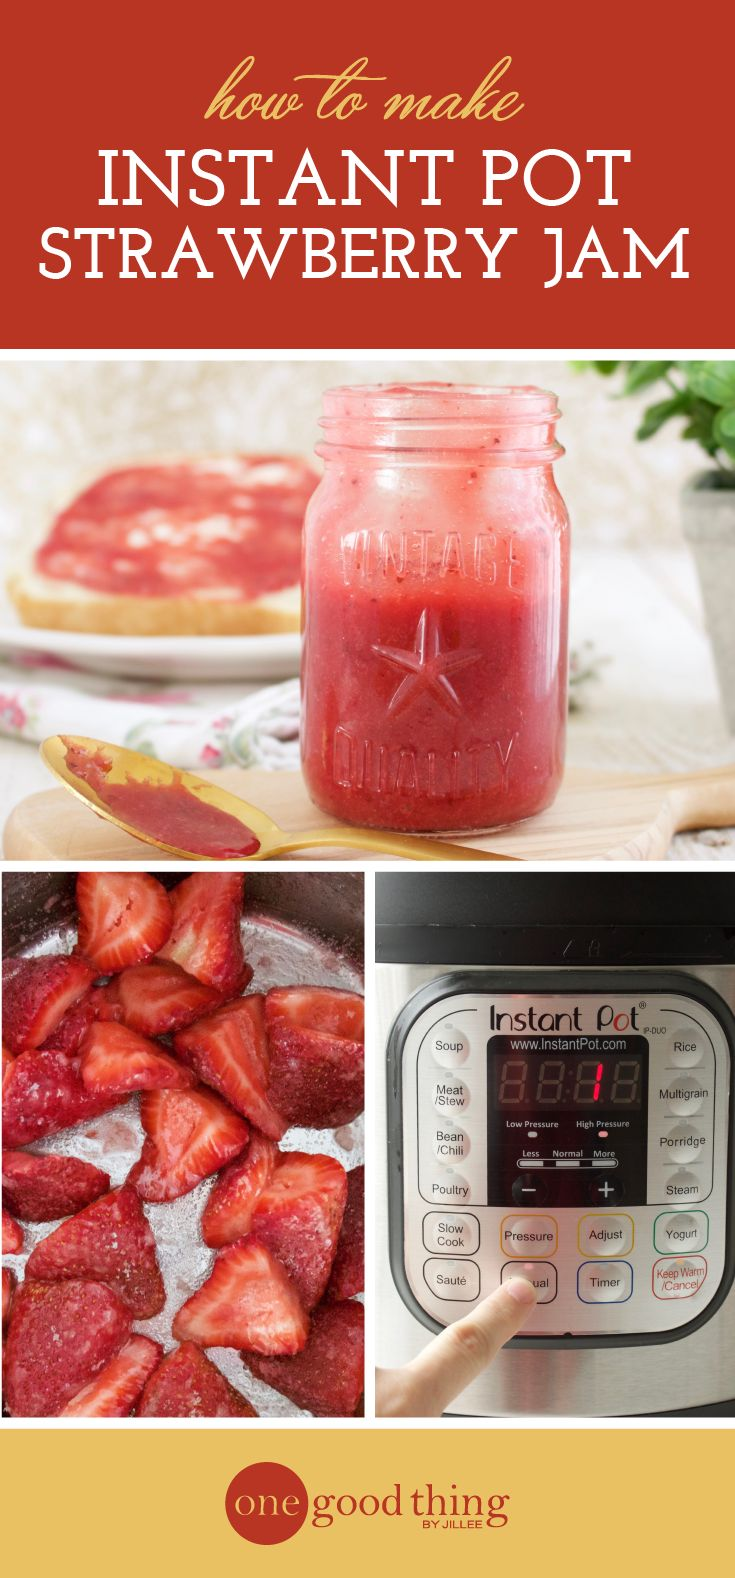 Learn a ridiculously simple method for making fresh strawberry jam right in your Instant Pot. Only 3 ingredients, and ready in under an hour.